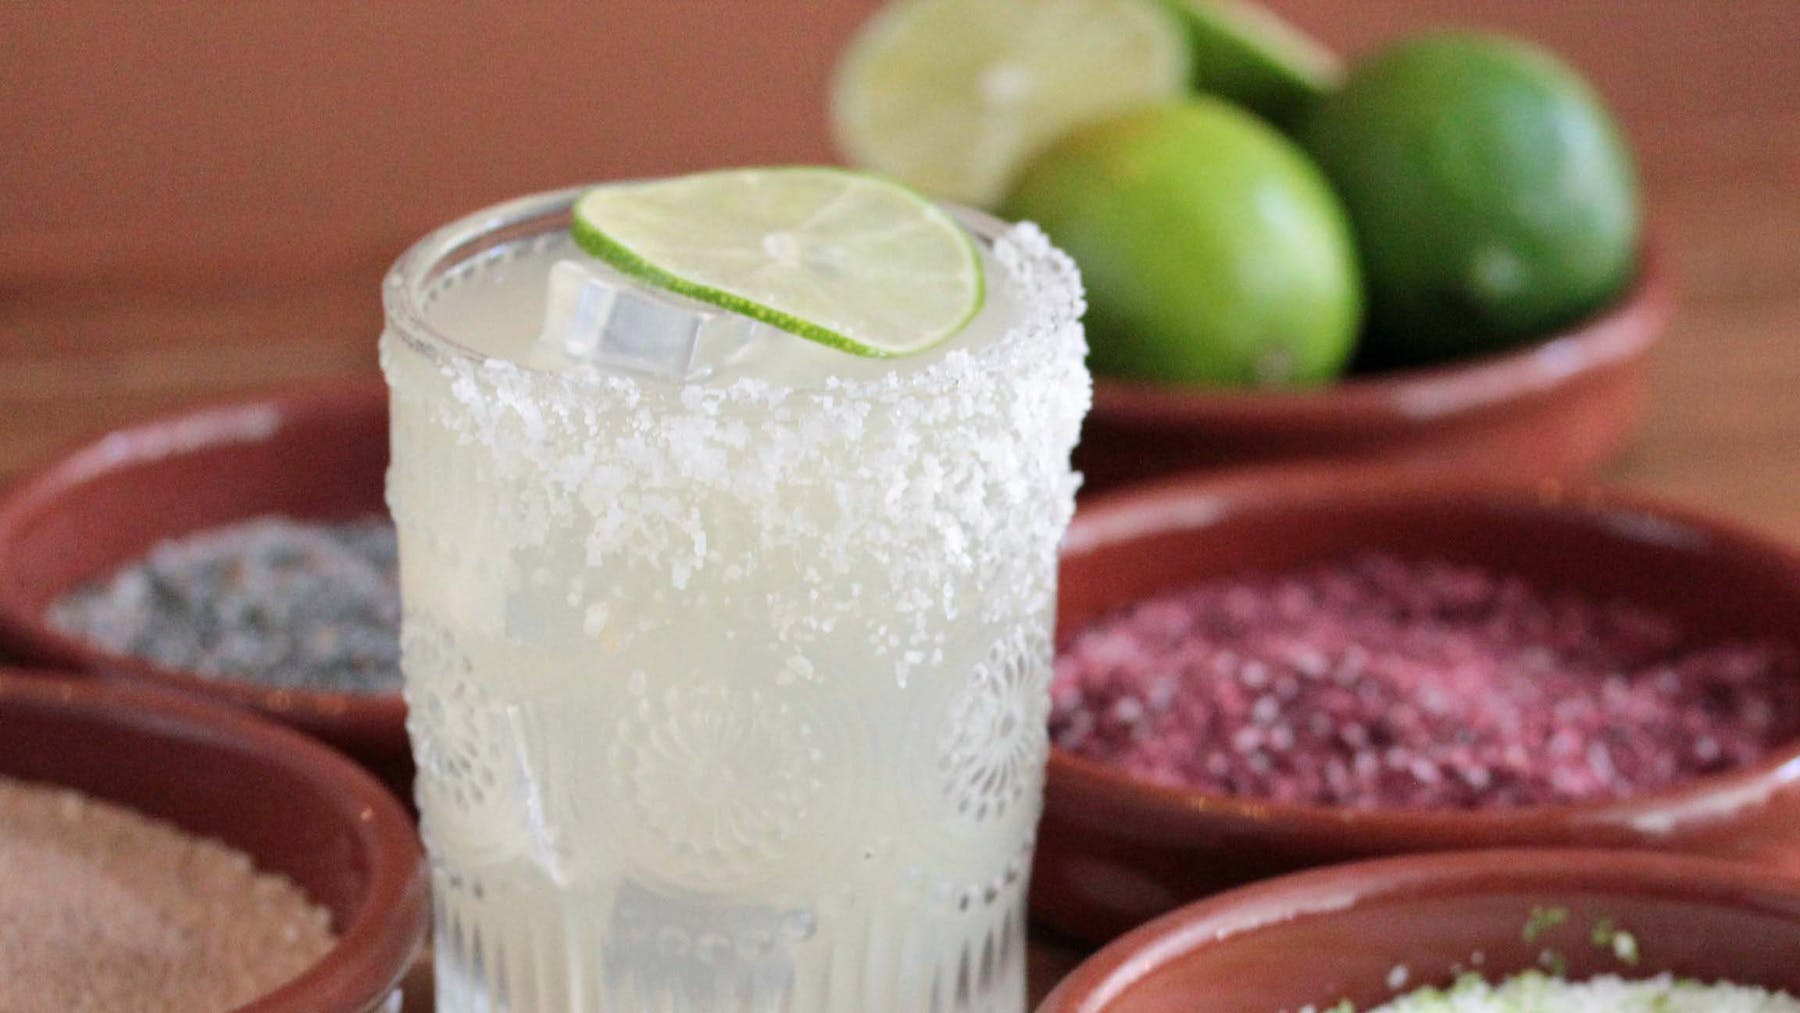 glass of Margarita with salts and bowl of limes